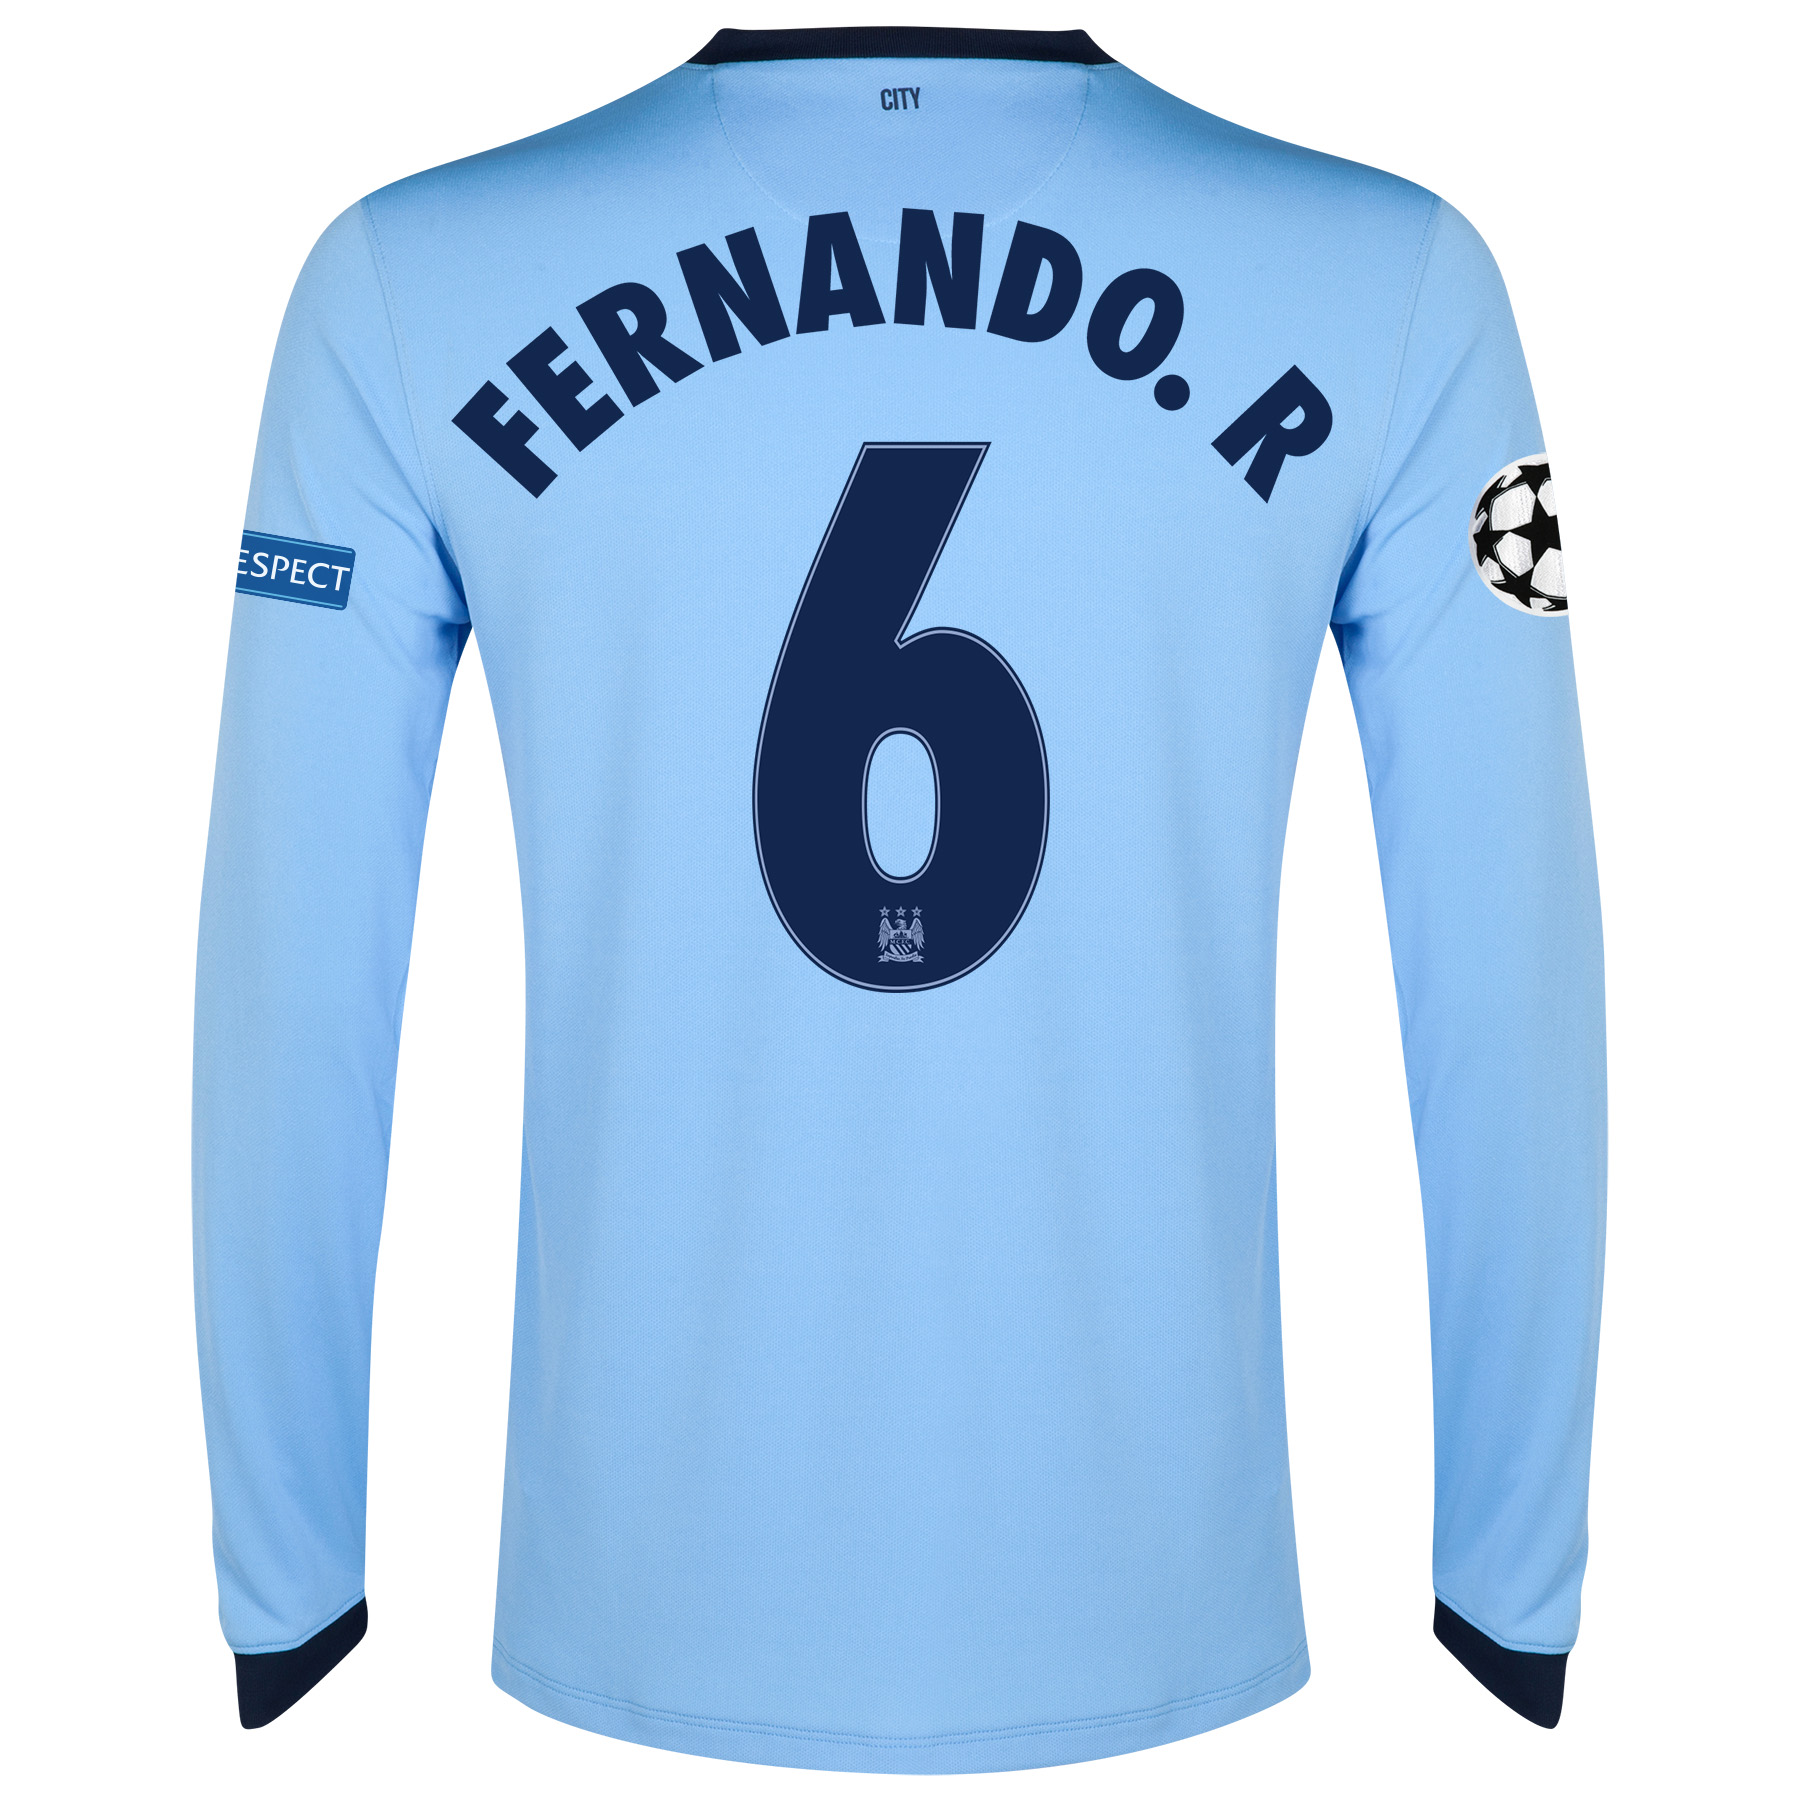 Manchester City UEFA Champions League Home Shirt 2014/15 - Long Sleeve Sky Blue with Fernando. R 6 printing